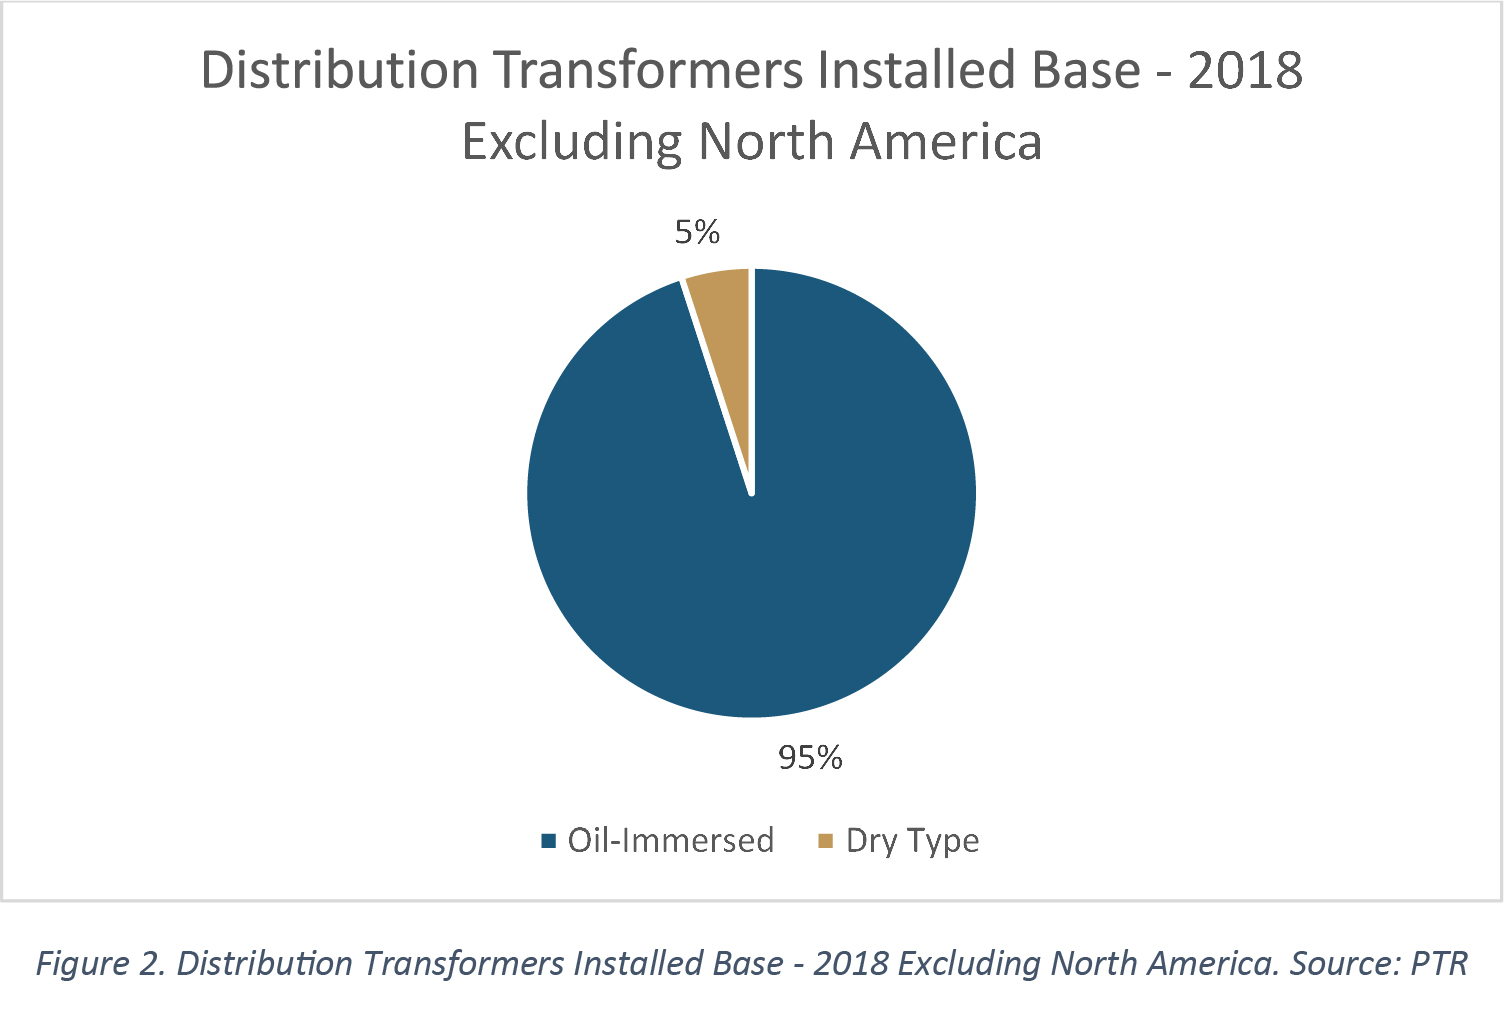 Distribution Transformers Installed Base - 2018 Excluding North America. Source: PTR